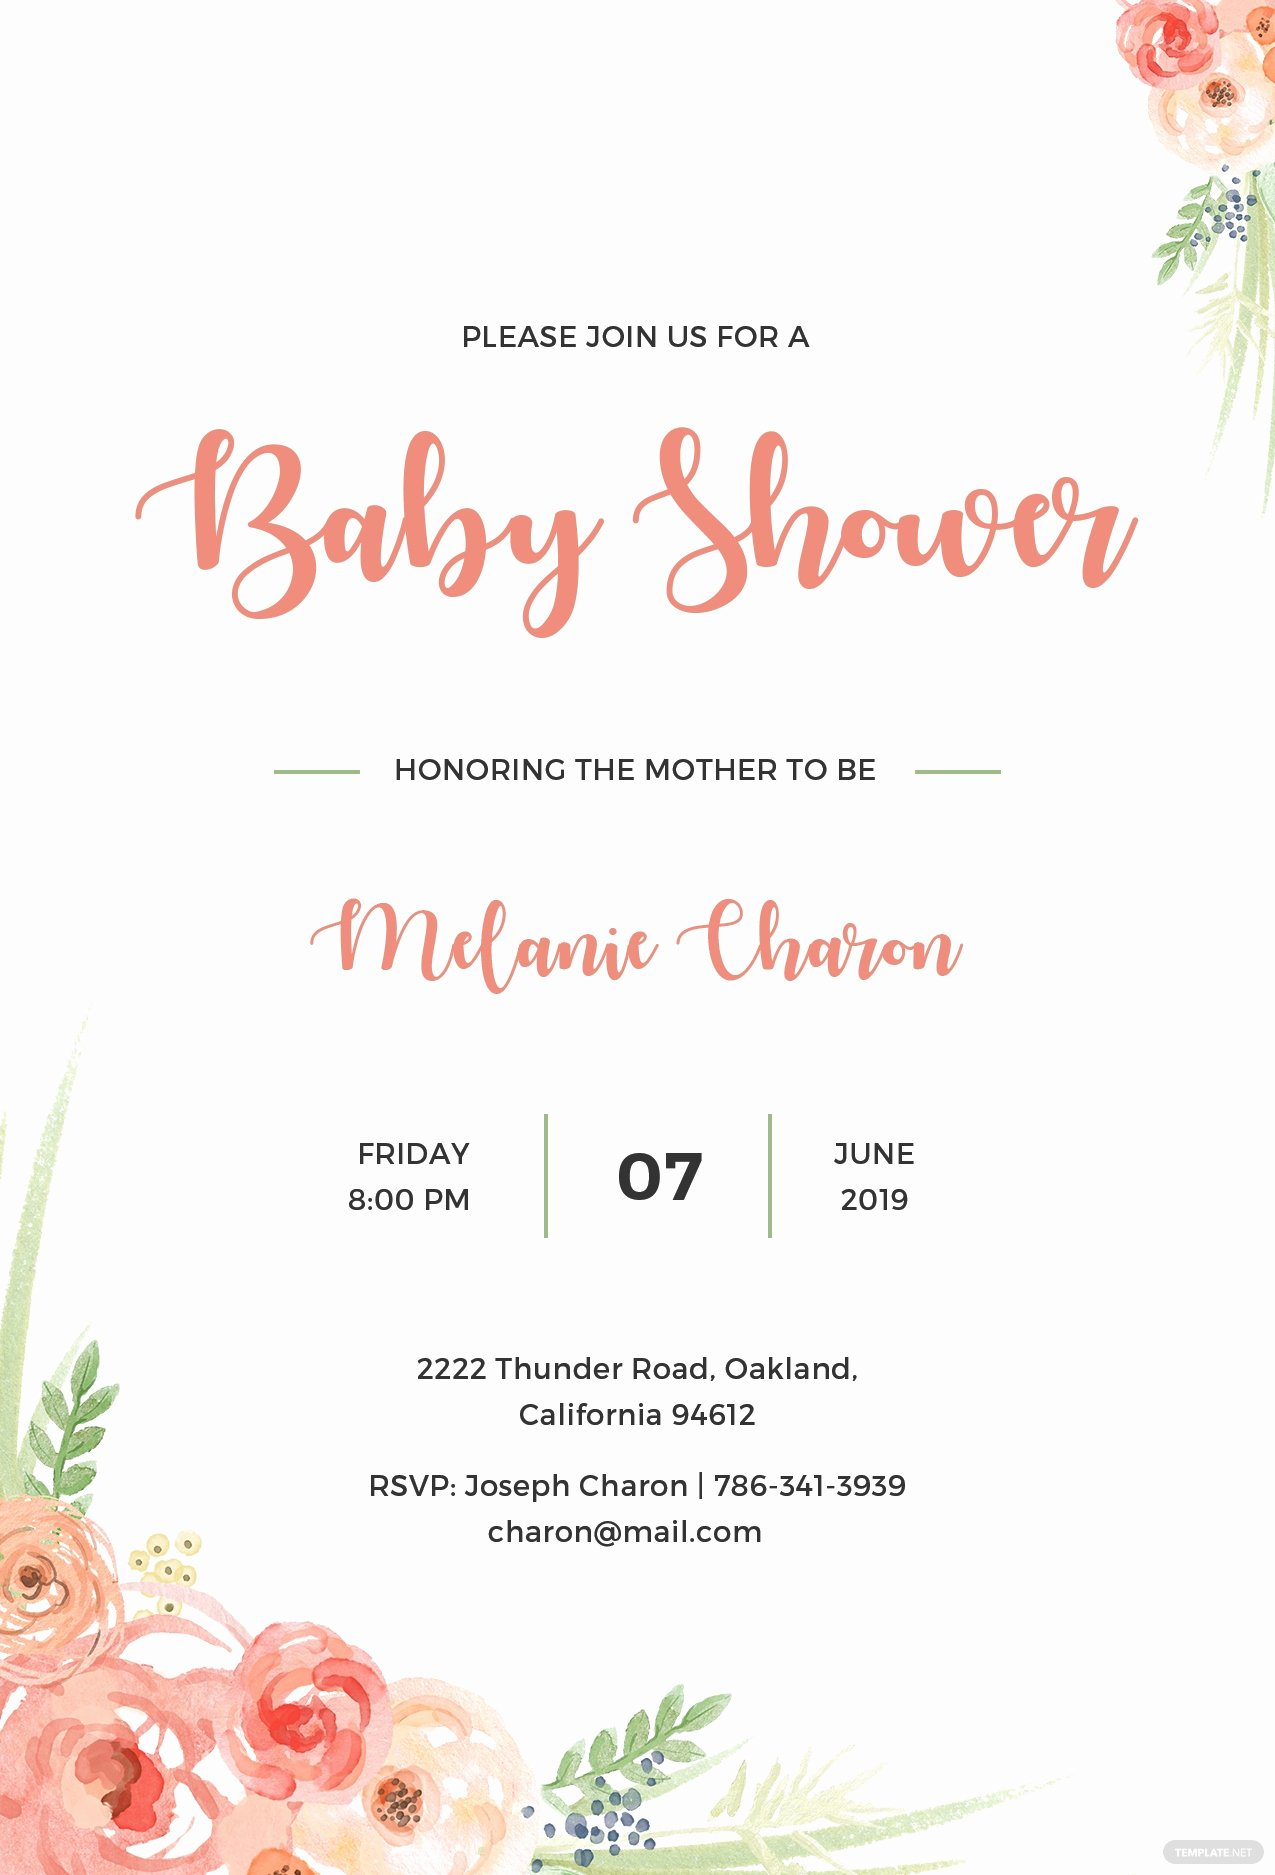 Baby Shower Invitations Templates Editable Unique Free Baby Shower Invitation Template In Psd Ms Word